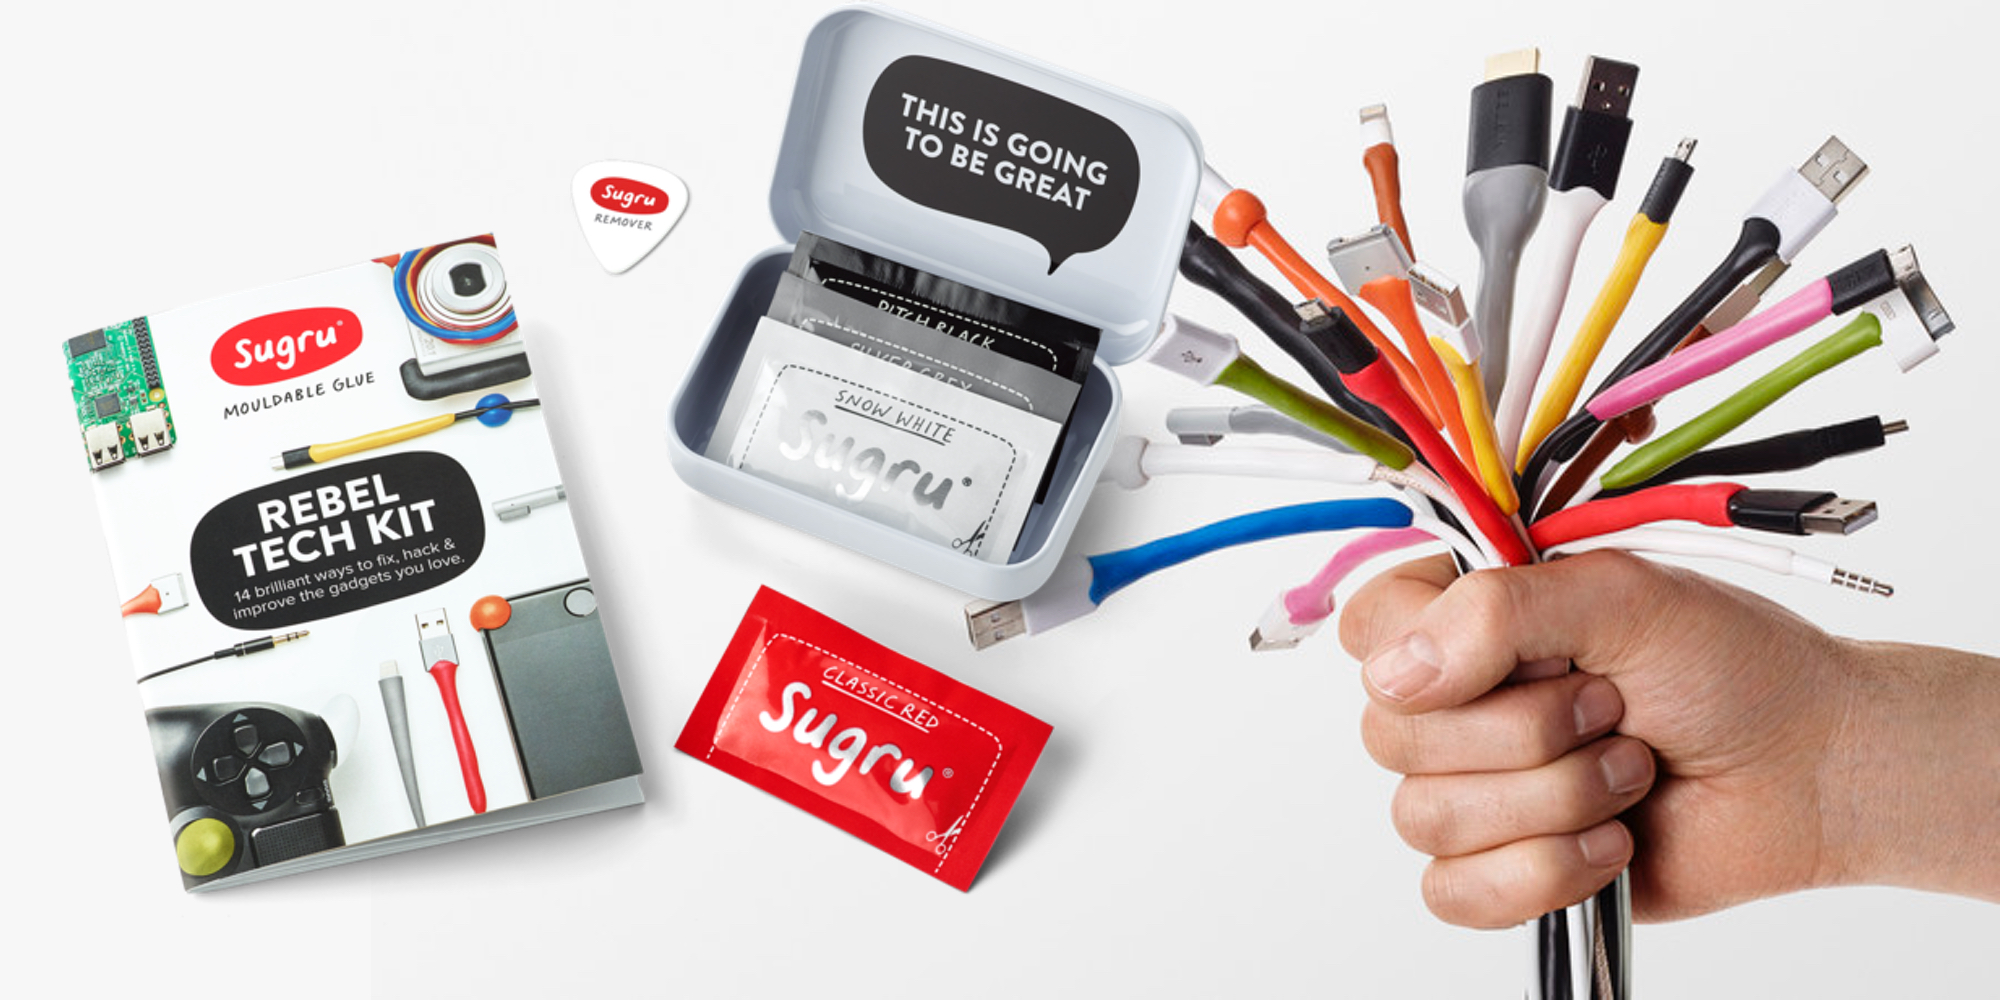 Repair frayed cables and more with Sugru's $10 Prime shipped Moldable Glue Tech Kit (30% off)